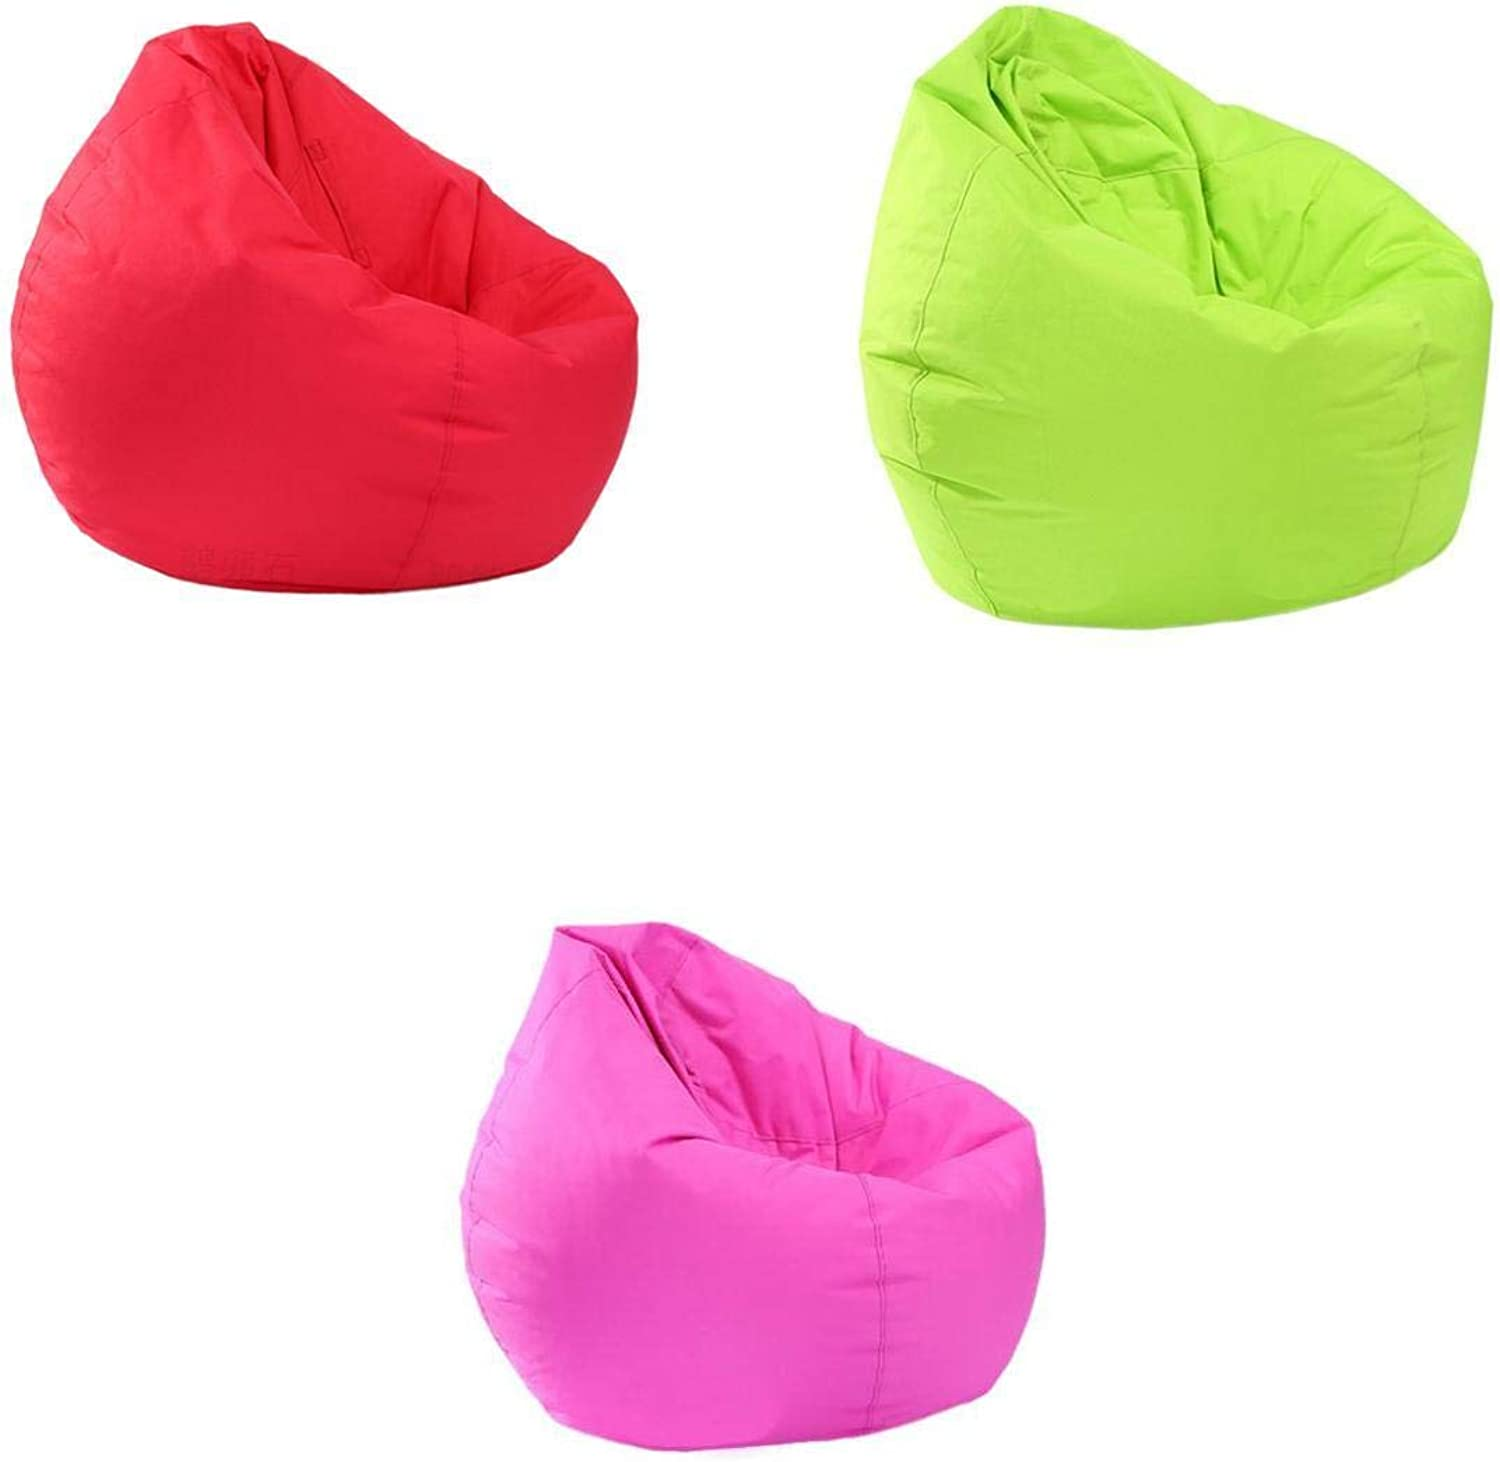 D DOLITY 3X Waterproof Bean Bag Cover Only Plush Toy Storage Holder Red & Green & Hot Pink